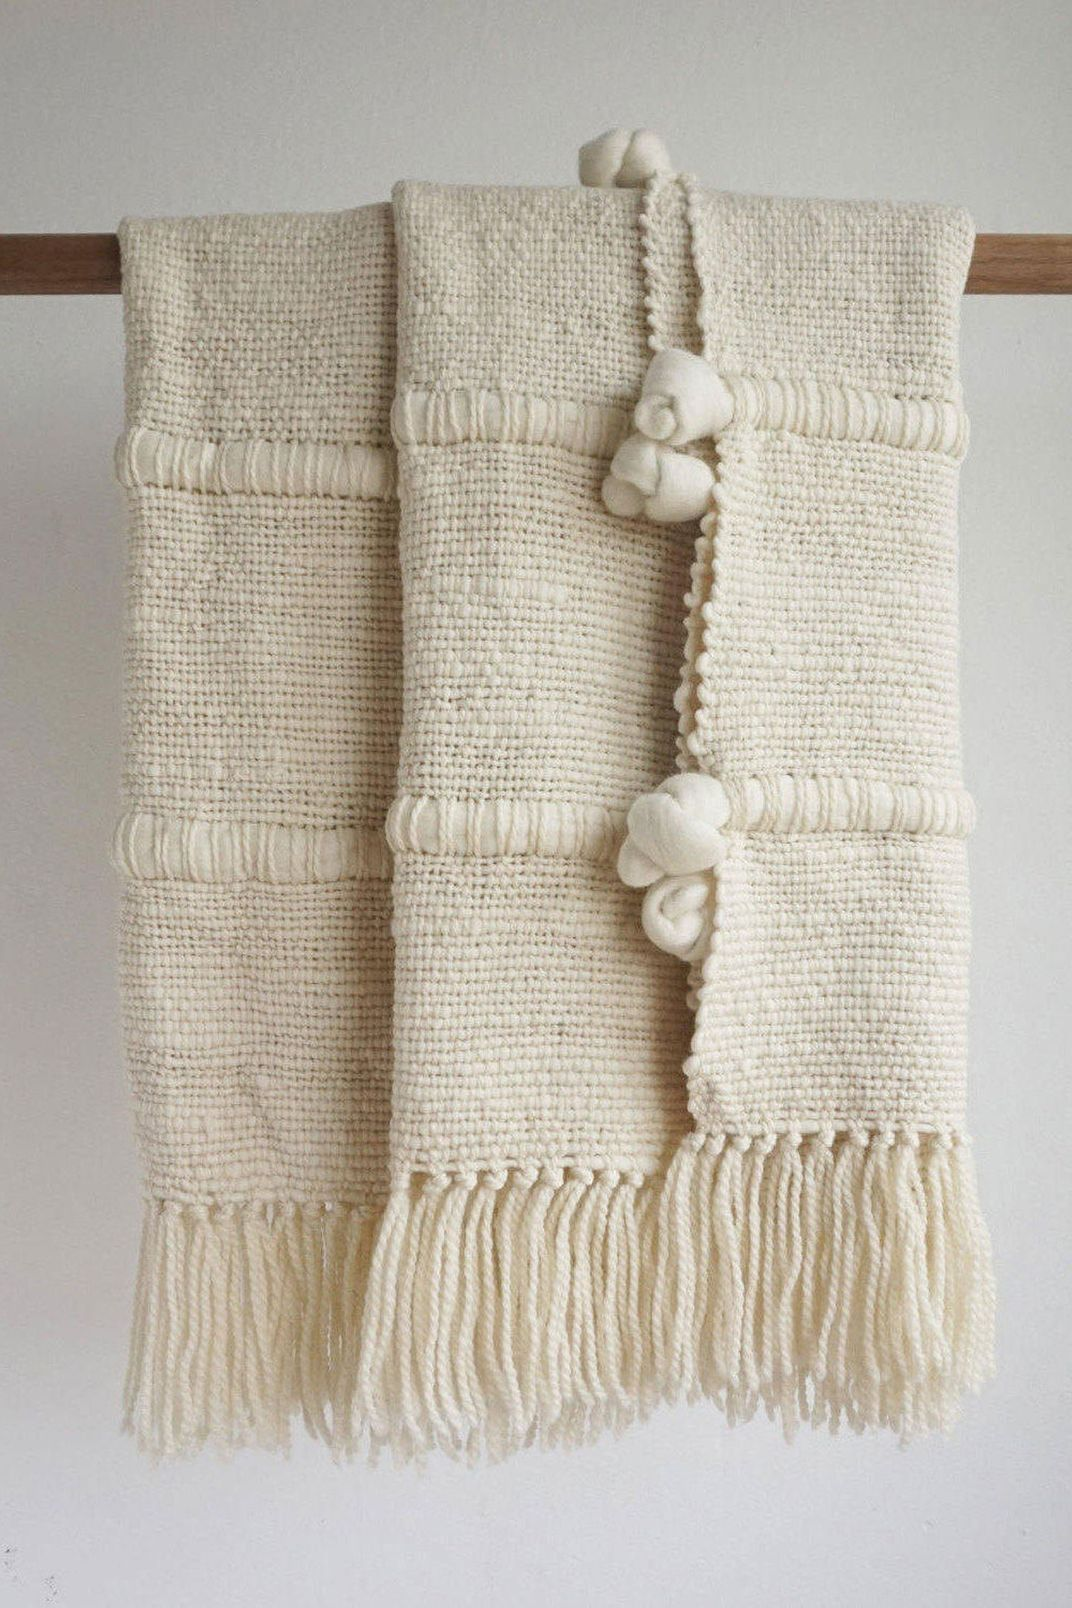 TexturableDecor Knot Wool Blanket